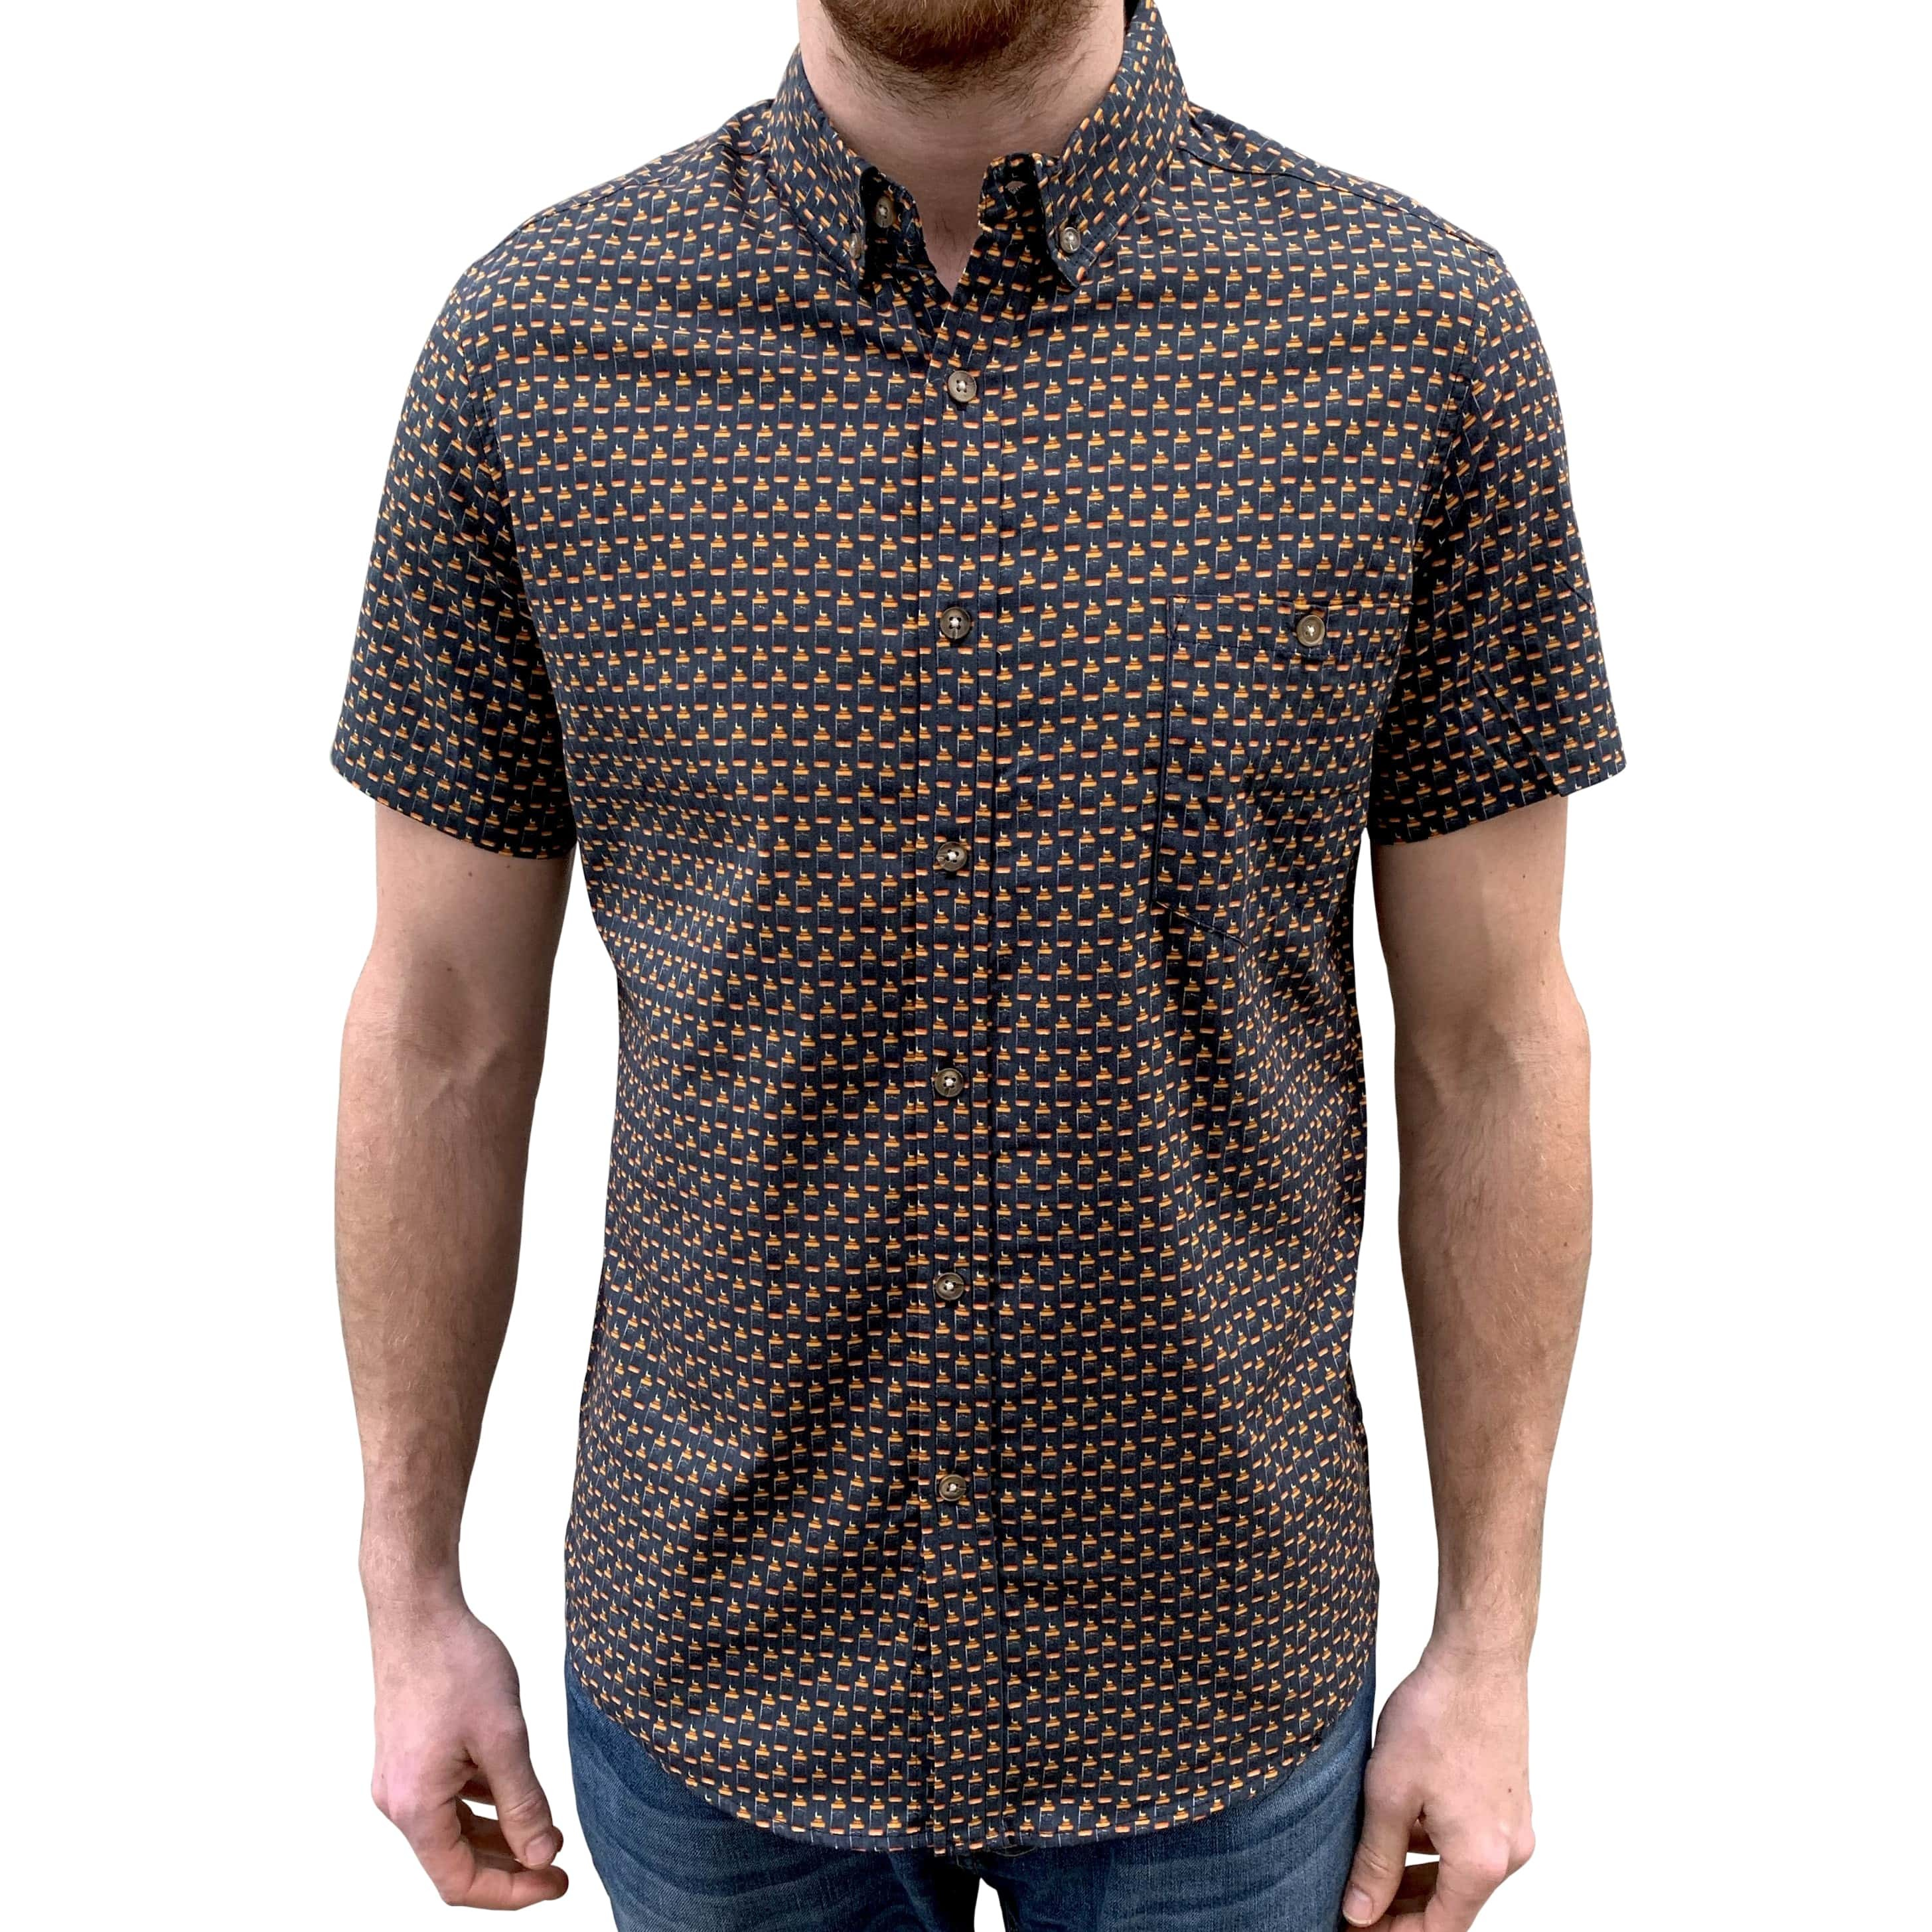 REPEATED MINI JD BUTTON UP SHIRT